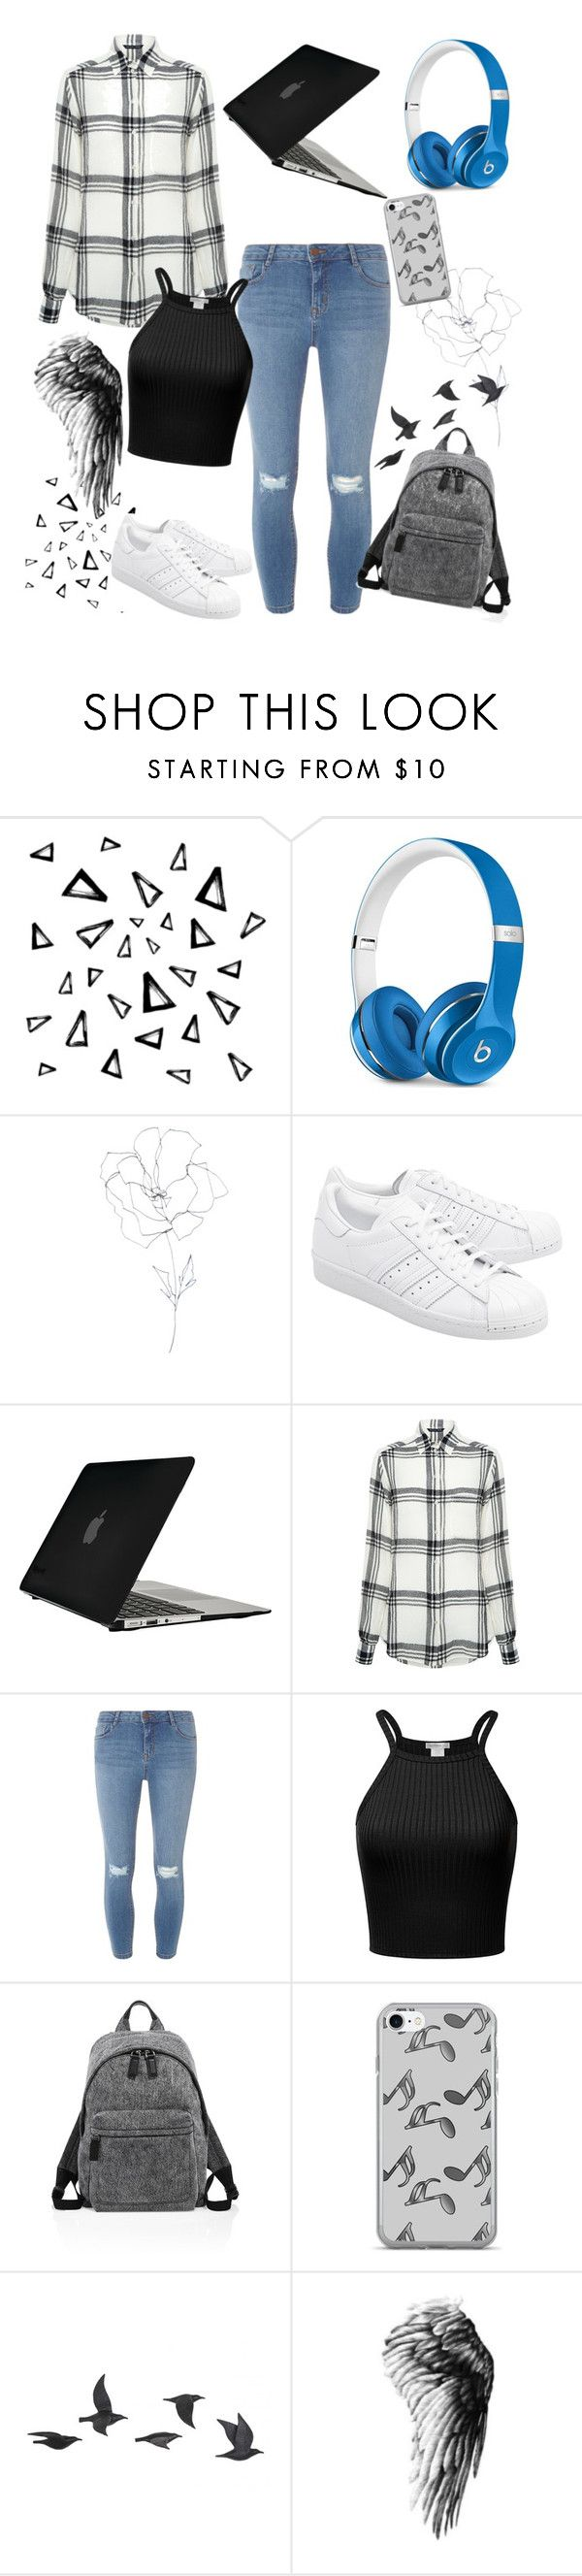 """""""Untitled #393"""" by blushygal ❤ liked on Polyvore featuring Nika, Beats by Dr. Dre, Blume, adidas Originals, Speck, Marissa Webb, Dorothy Perkins, Marc Jacobs, Music Notes and Jayson Home"""